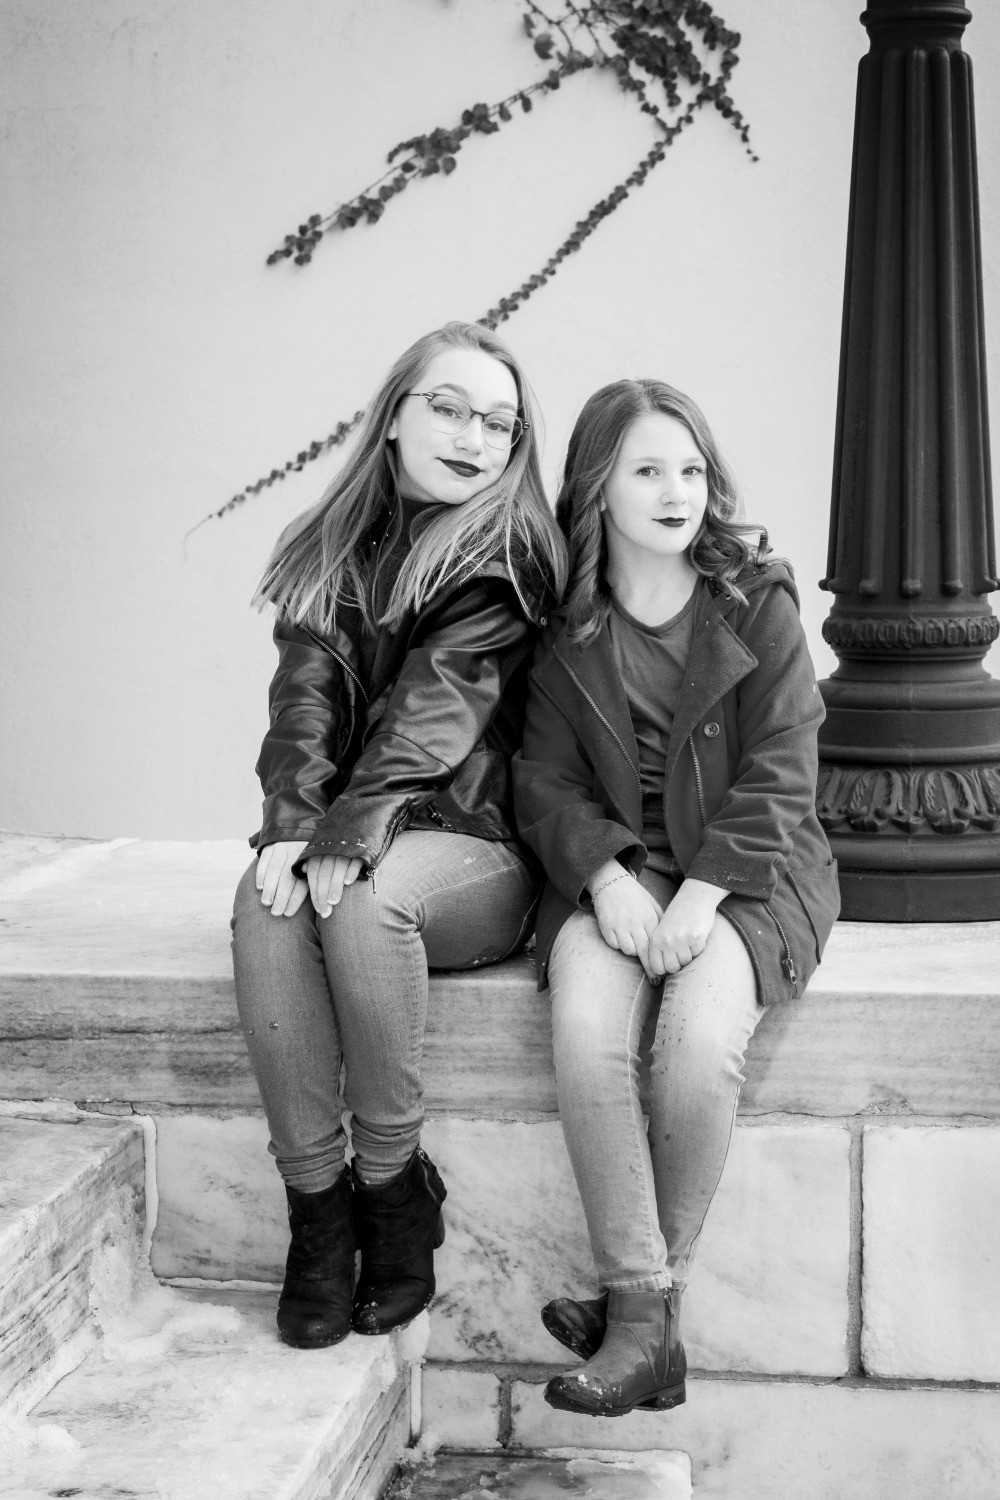 Two young girls sitting on steps at an art museum